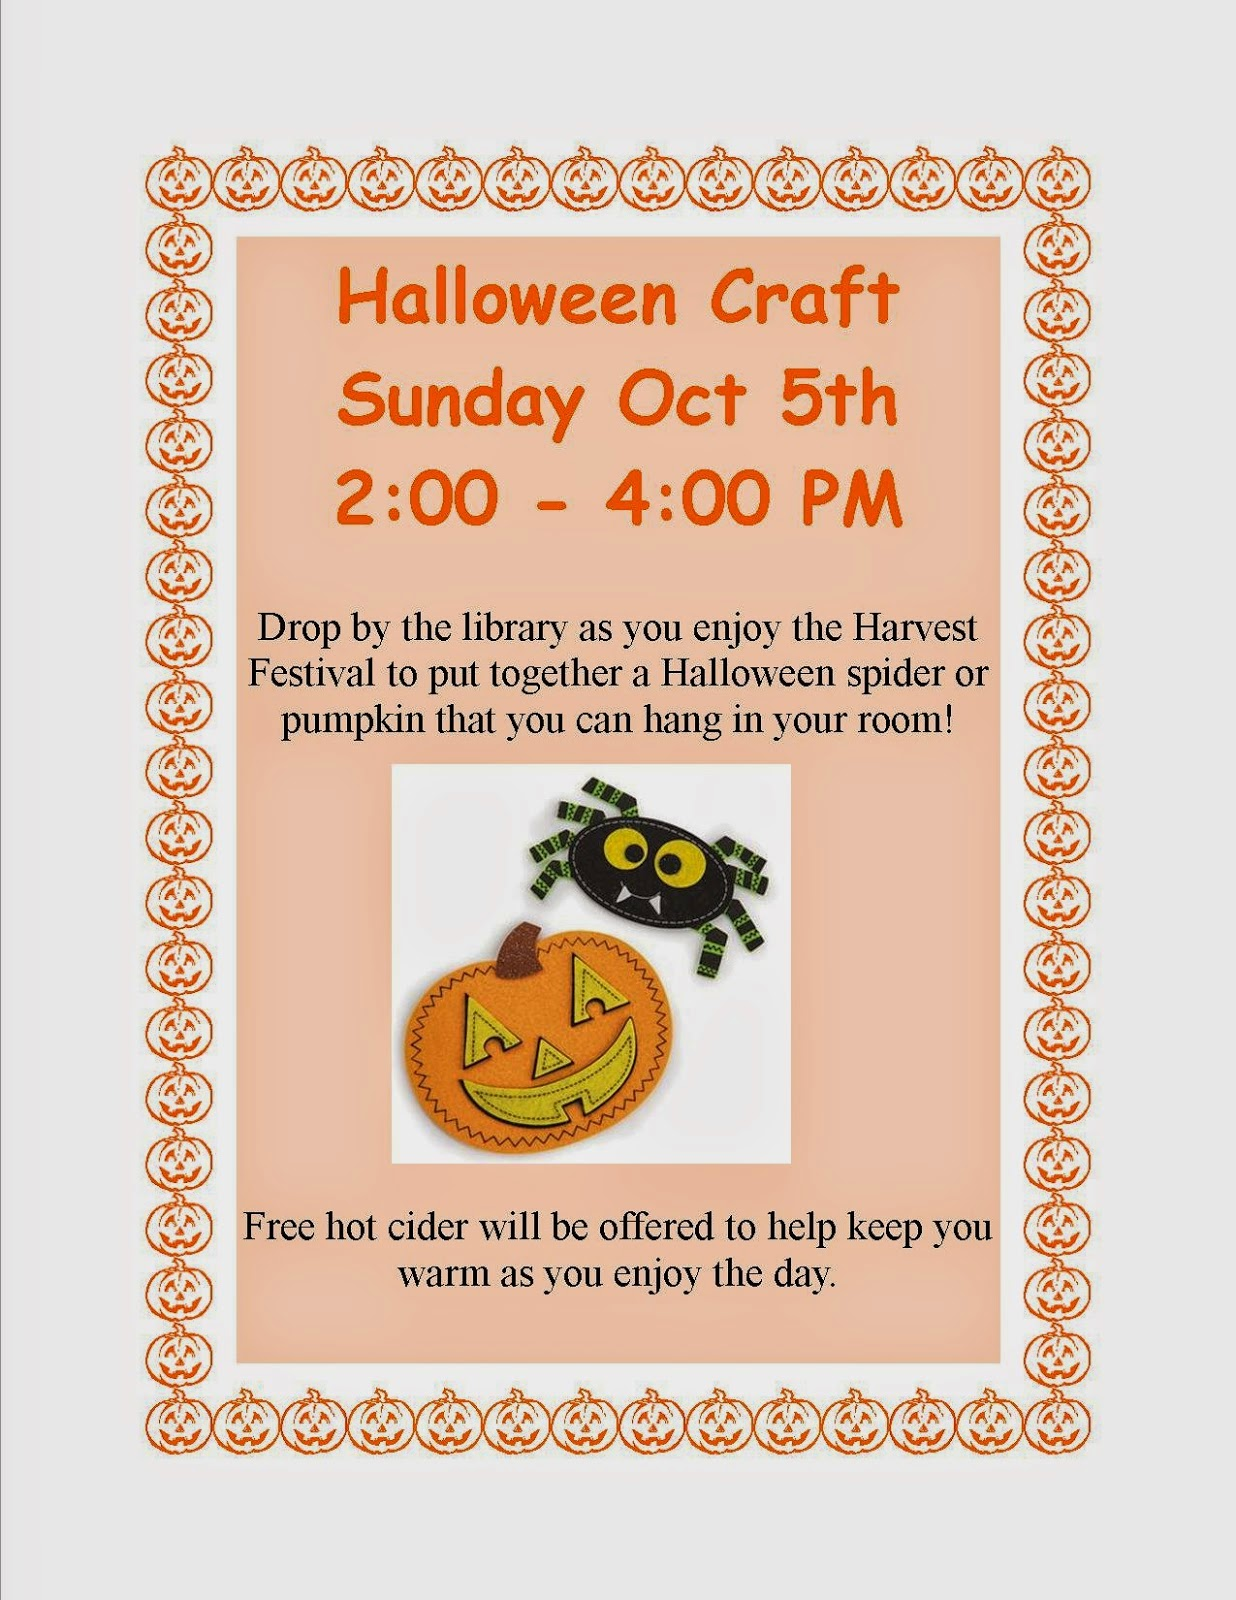 Halloween craft - Sunday, Oct 5th